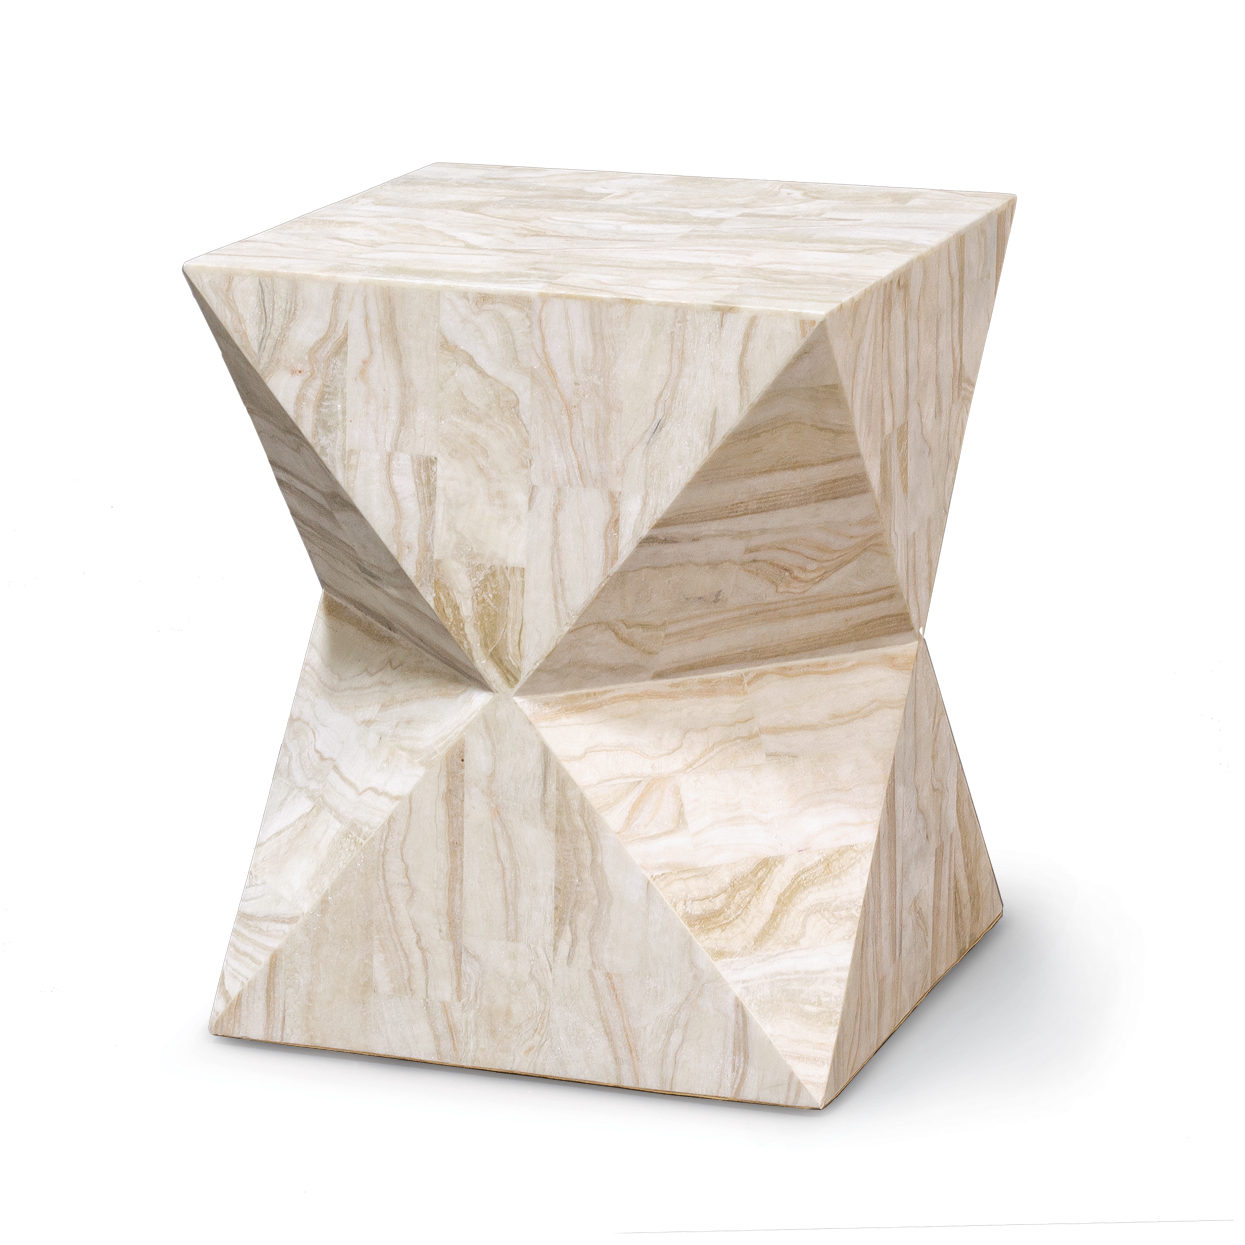 Attractive Description. TRITON STONE SIDE TABLE